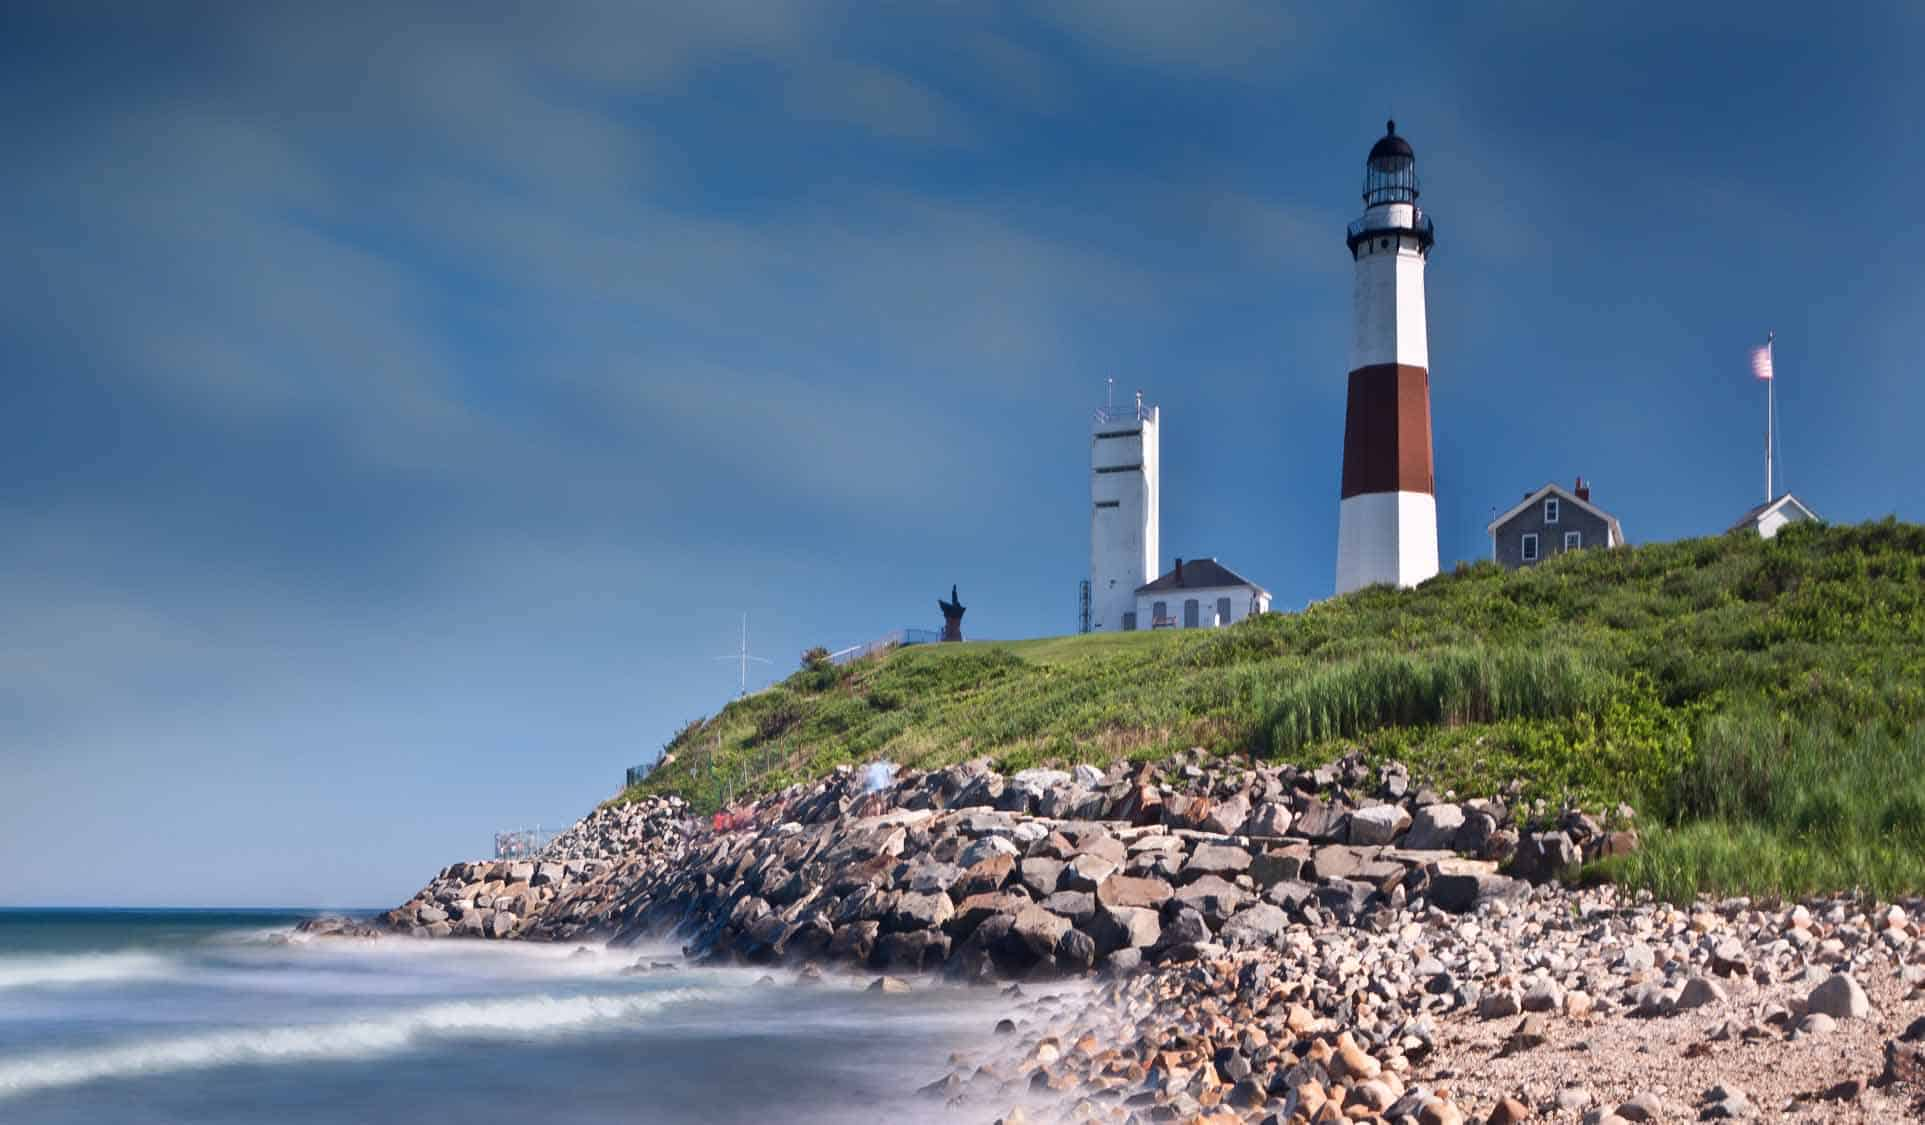 Montauk Point Lighthouse in Long Island, NY